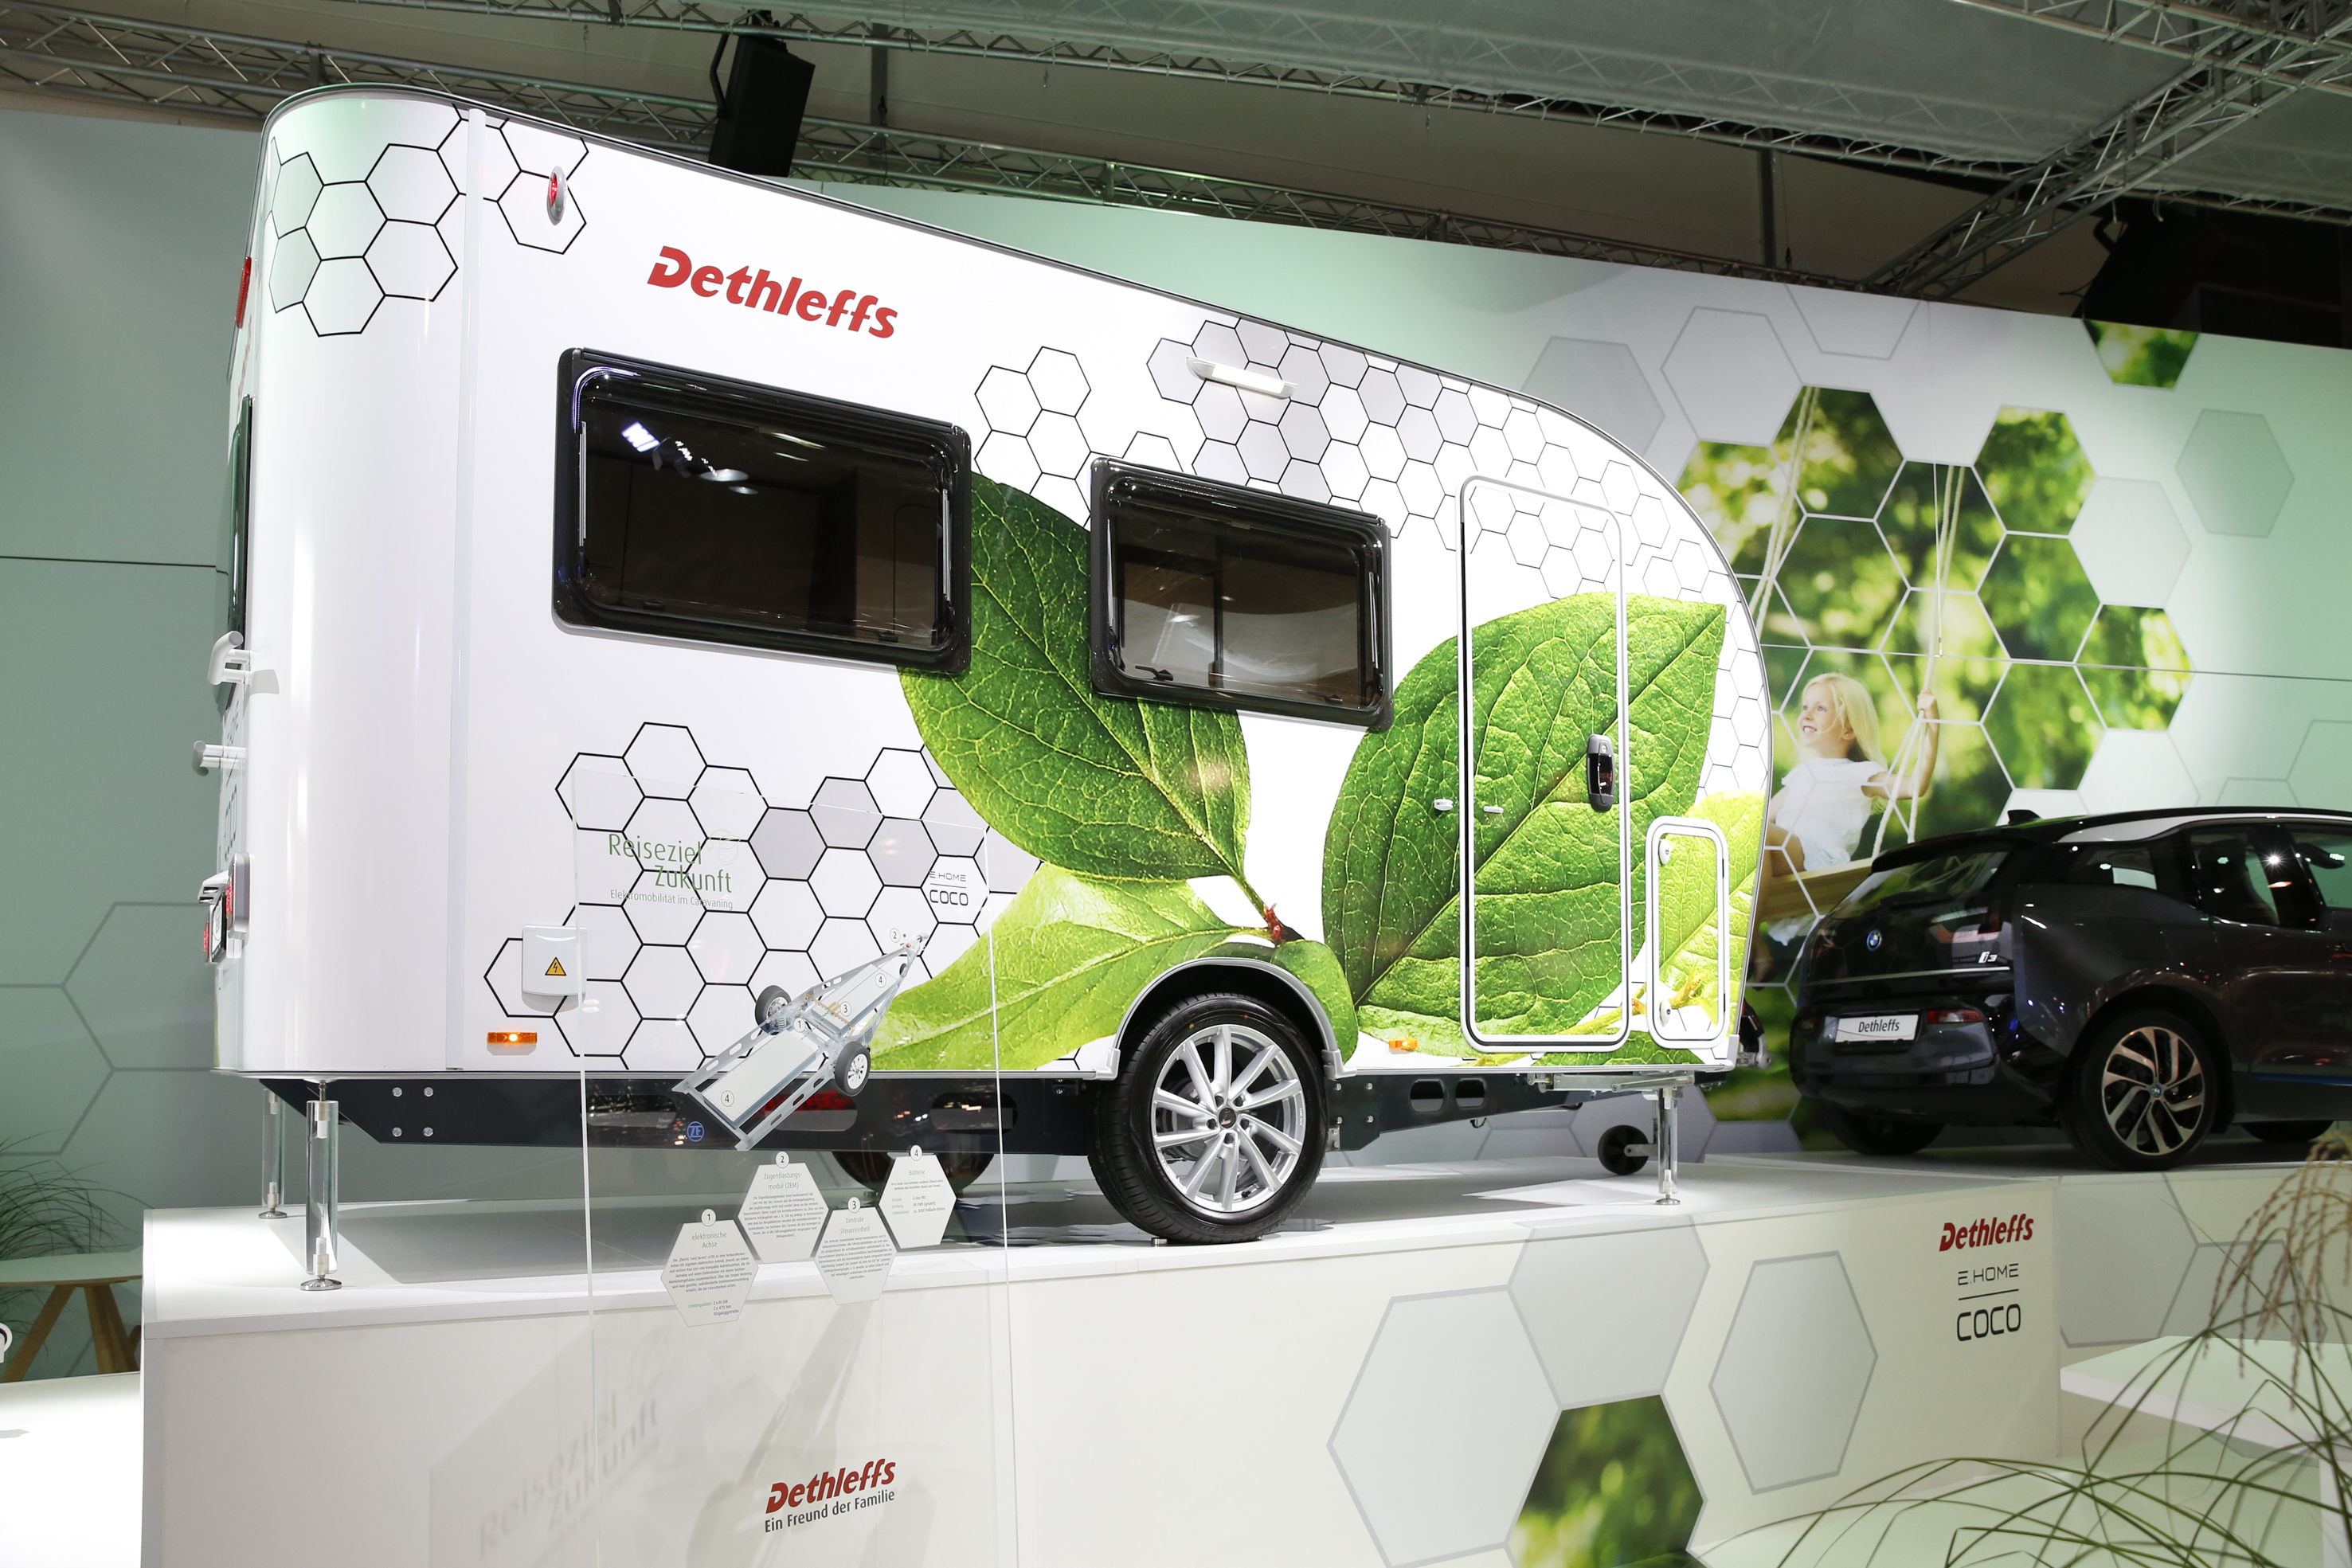 Finally, a camper that could be towed by an electric car